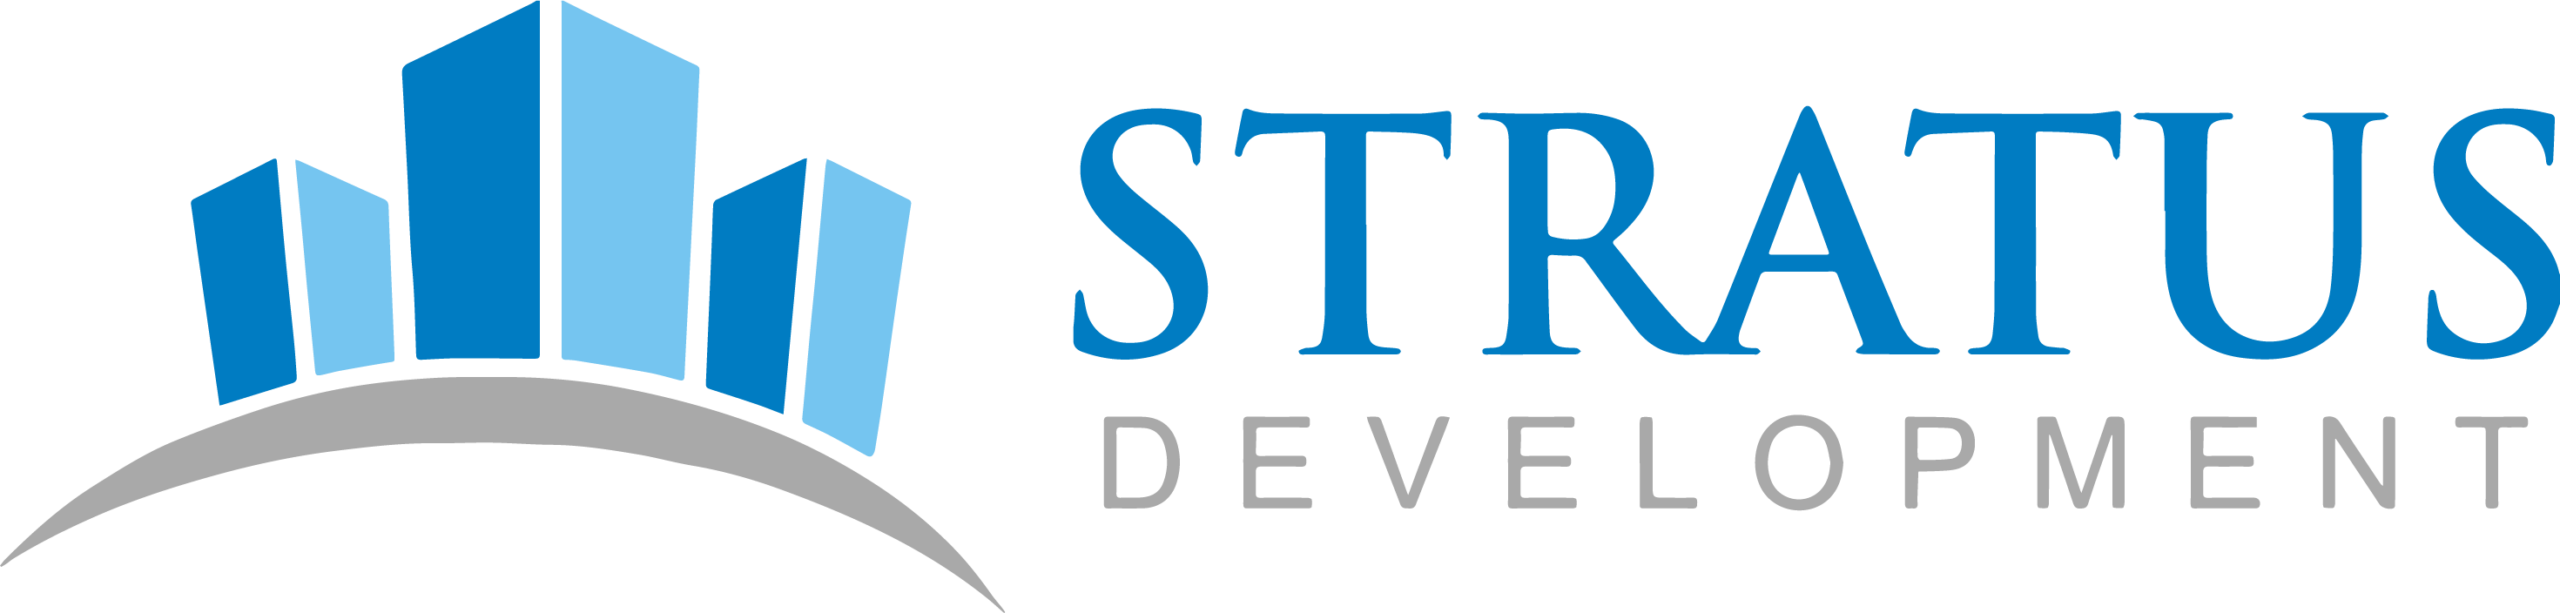 Stratus Development Group